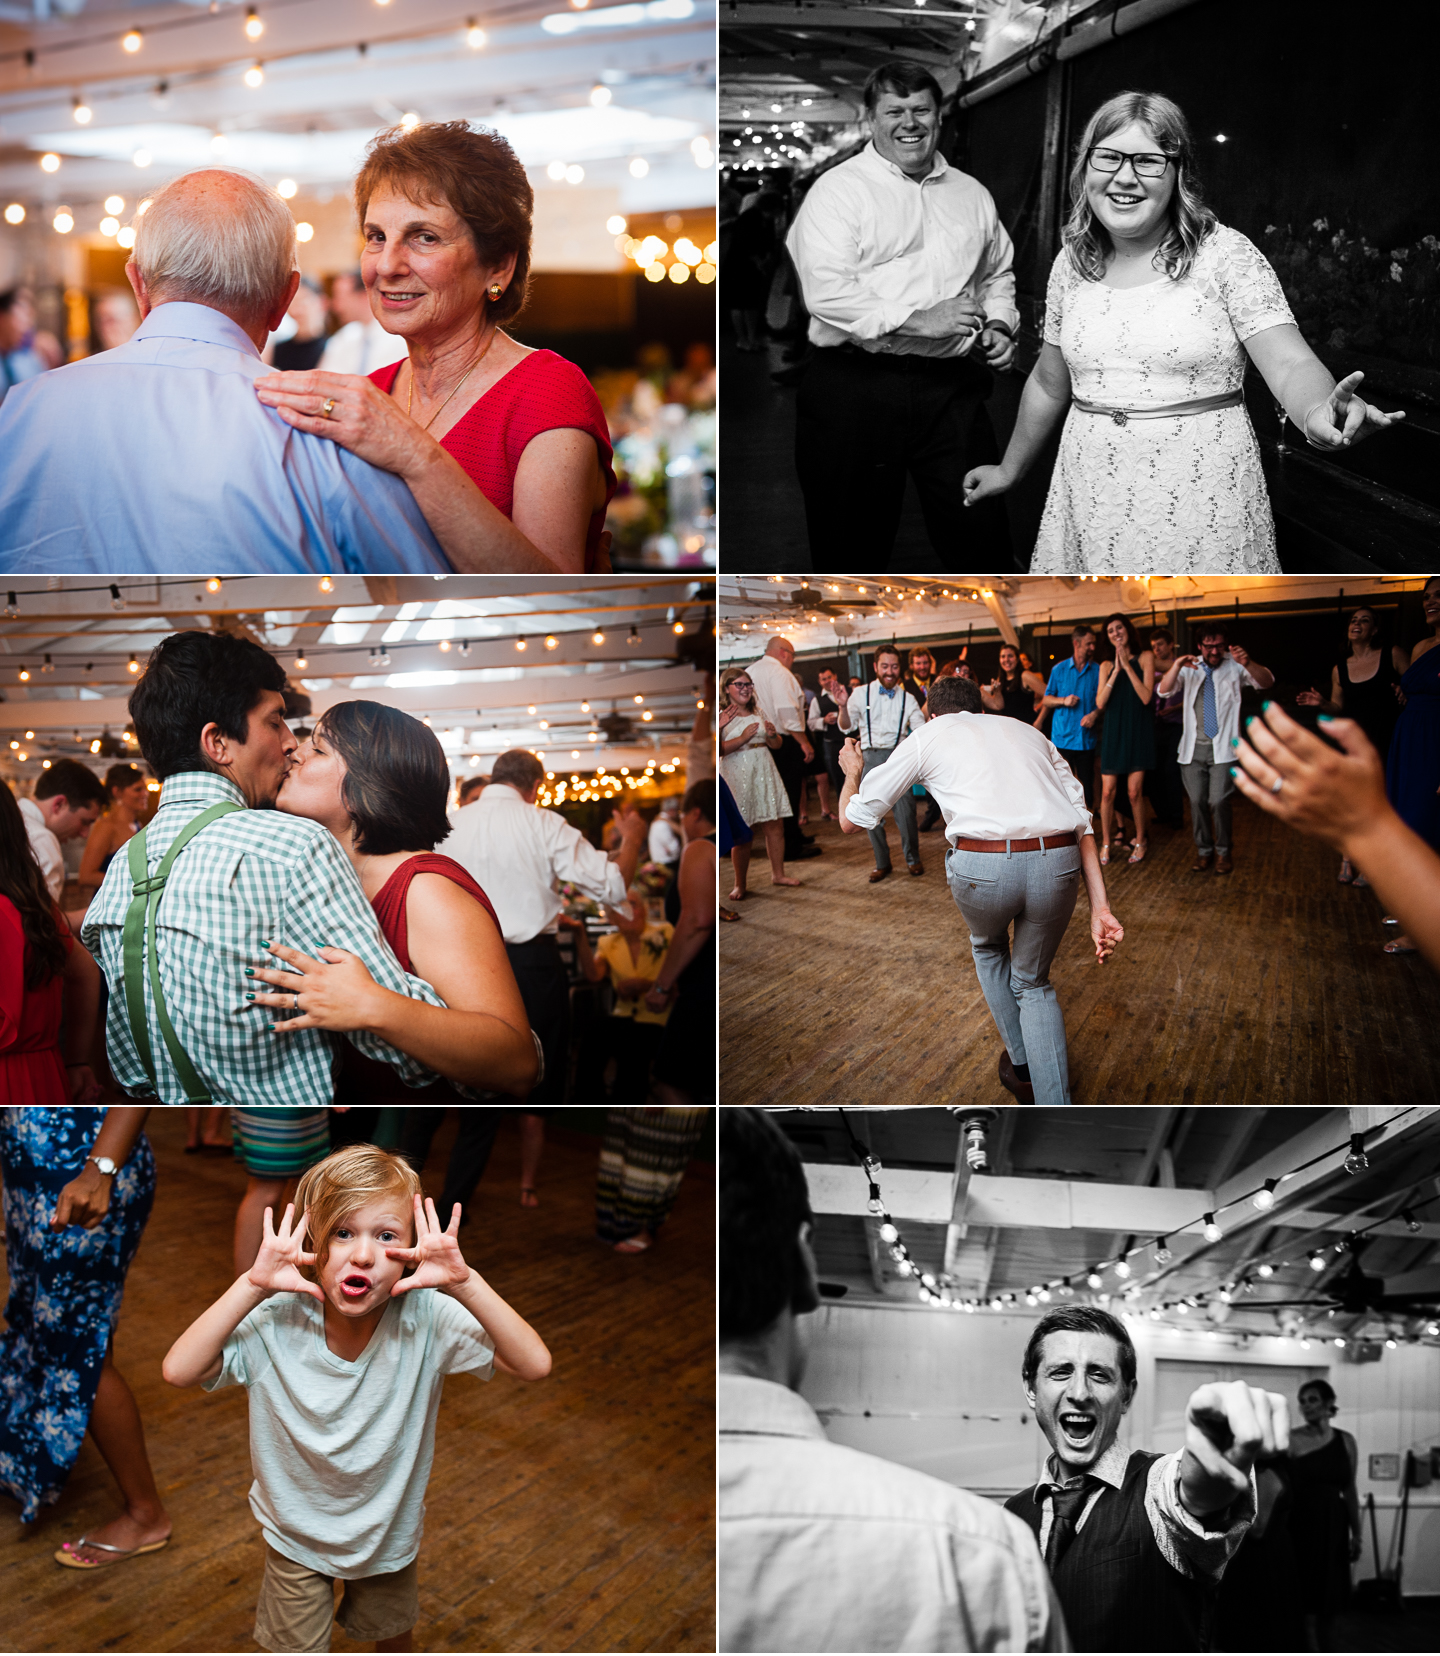 a collage of wedding guests dancing and having fun at a summer camp wedding